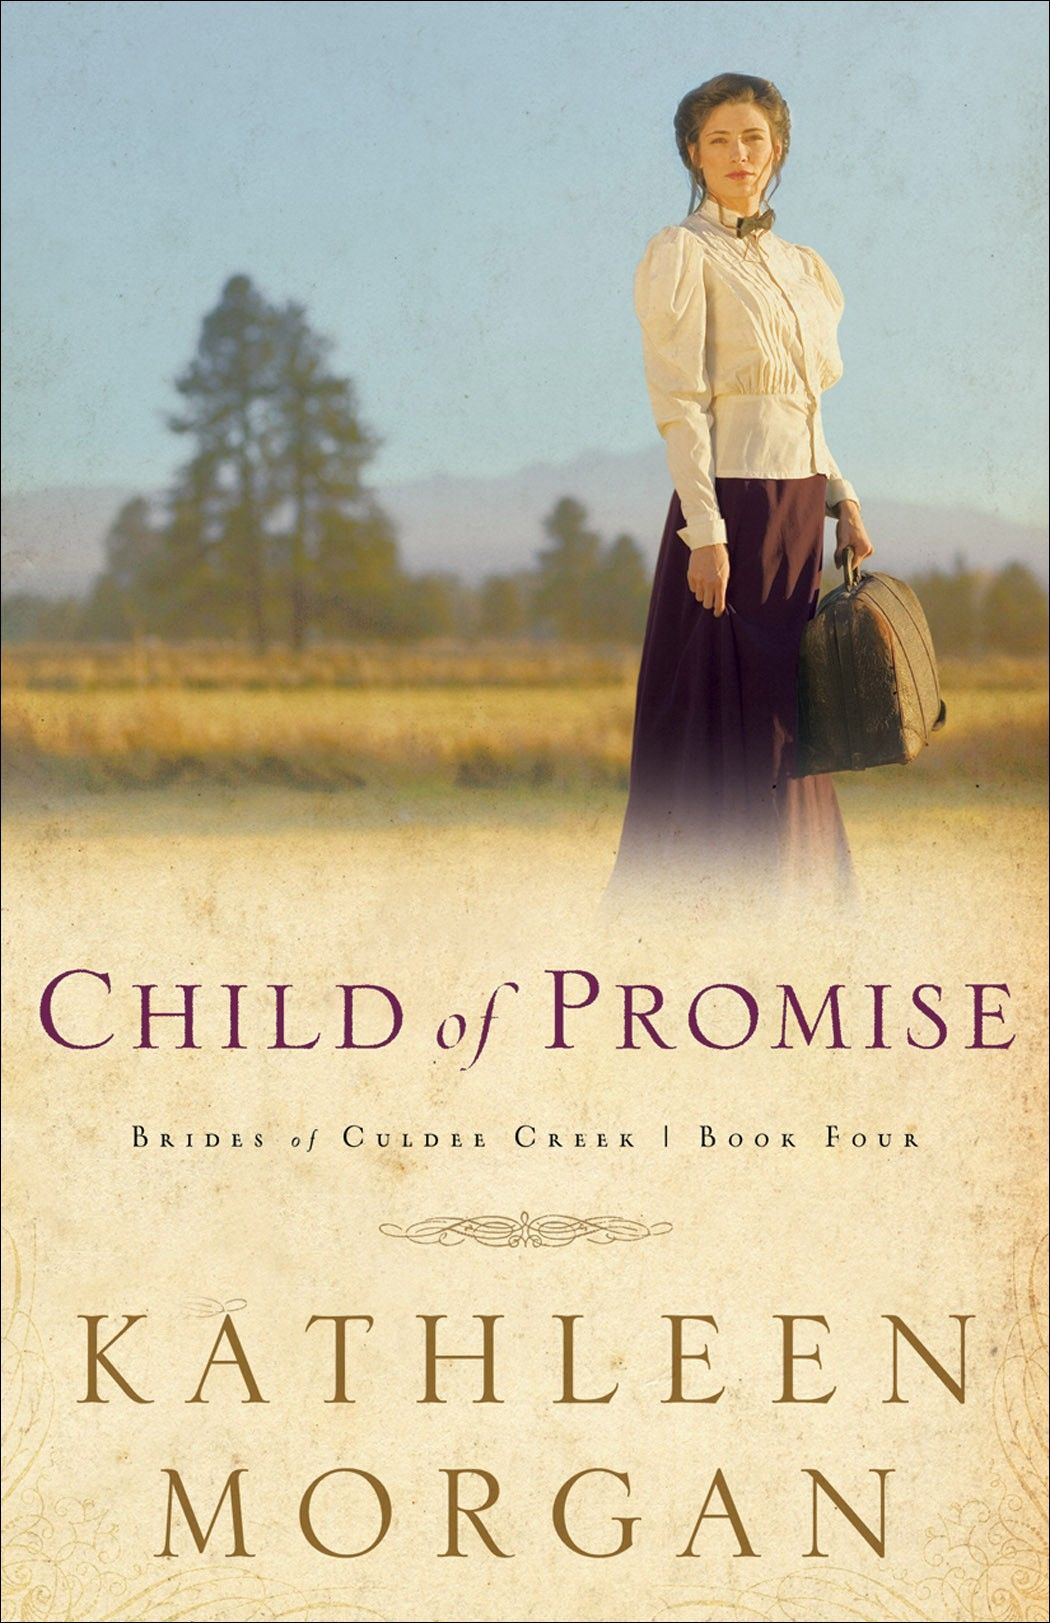 Child of Promise (Brides of Culdee Creek Book #4) By: Kathleen Morgan